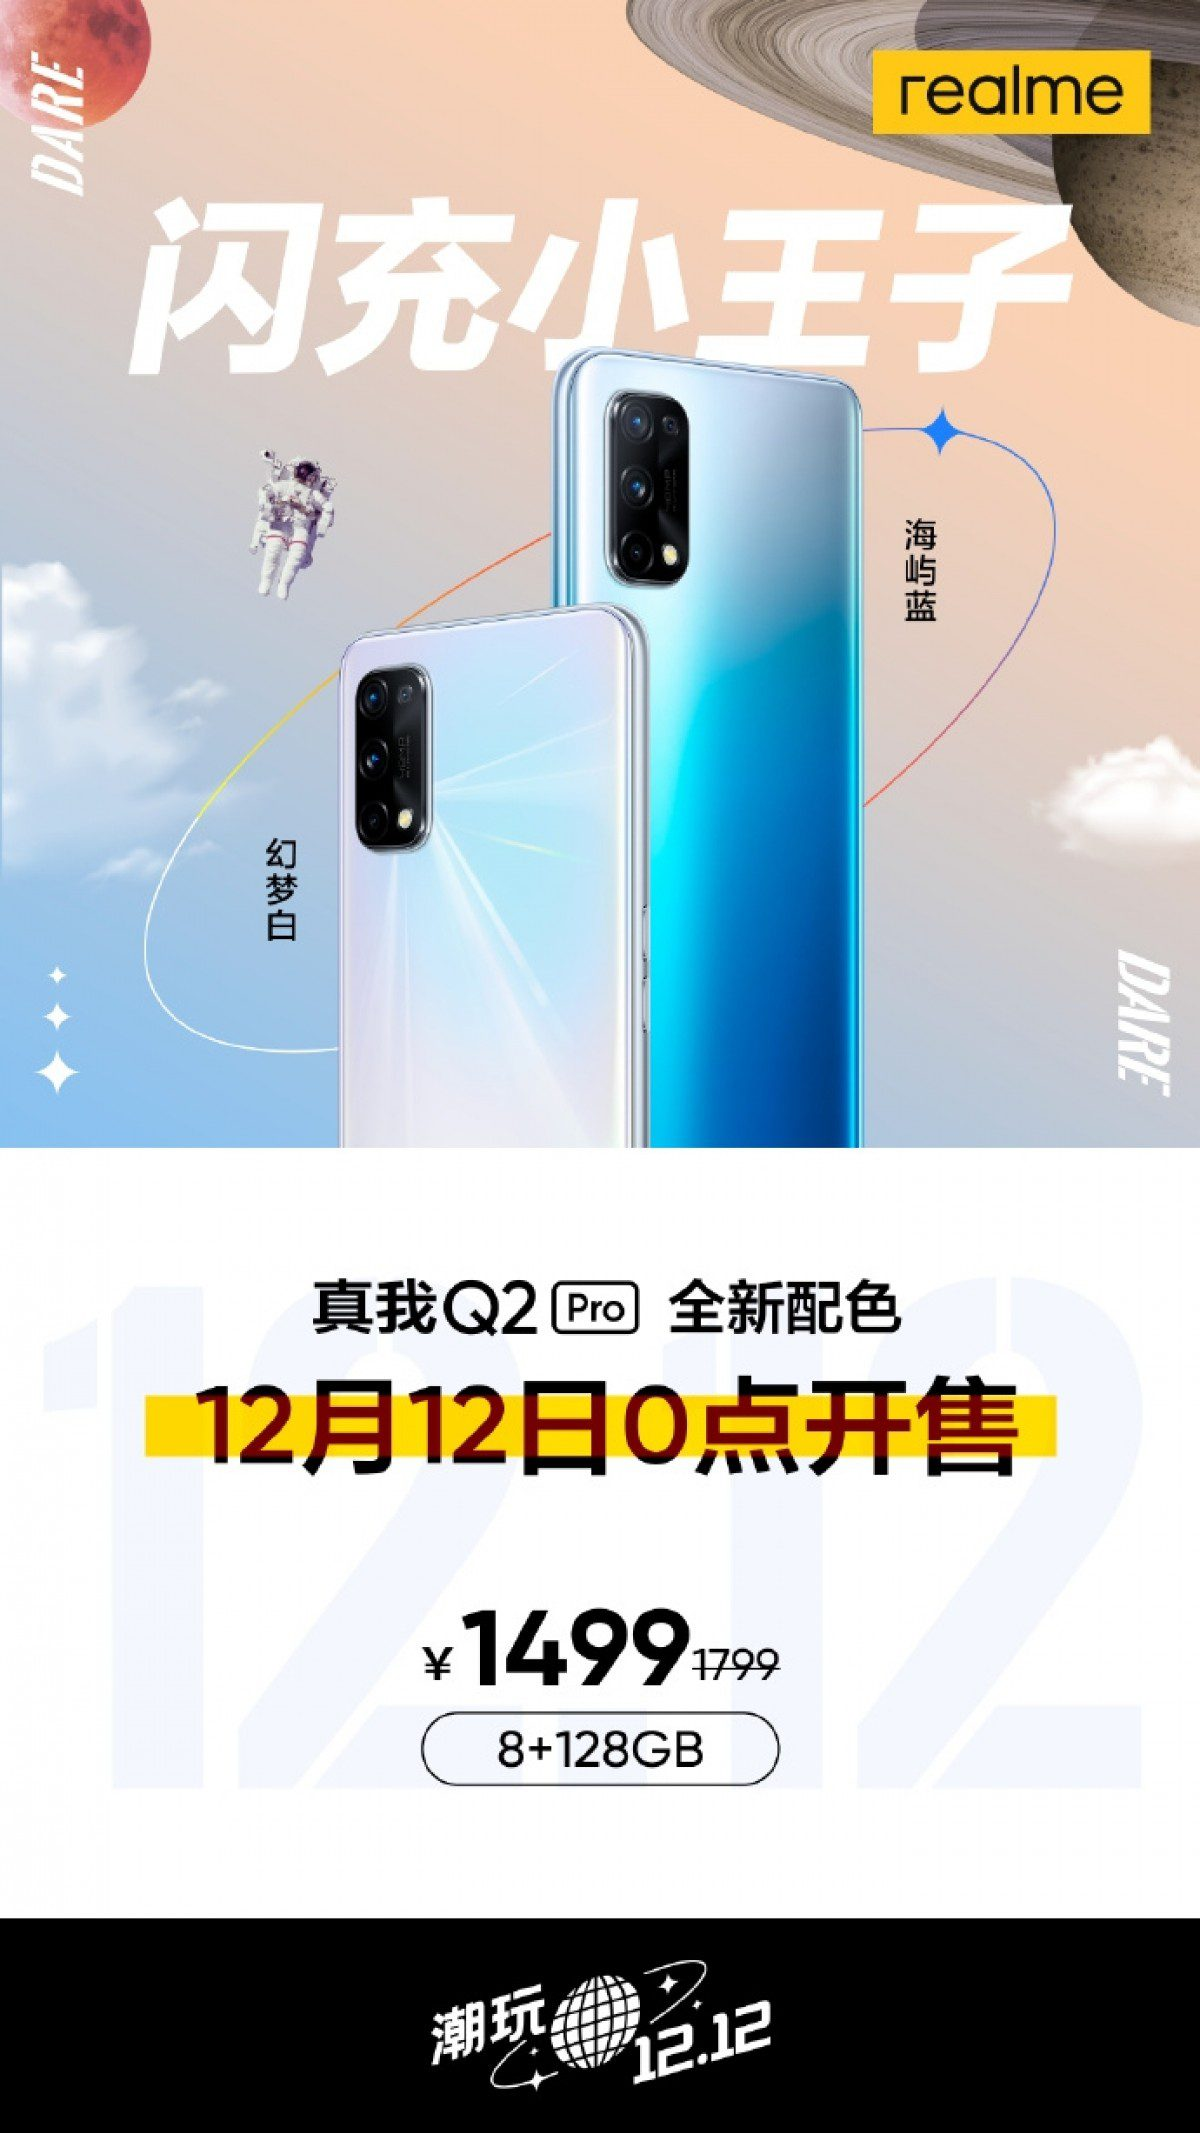 Realme Q2 Pro comes in two more colors (blue and regular white).